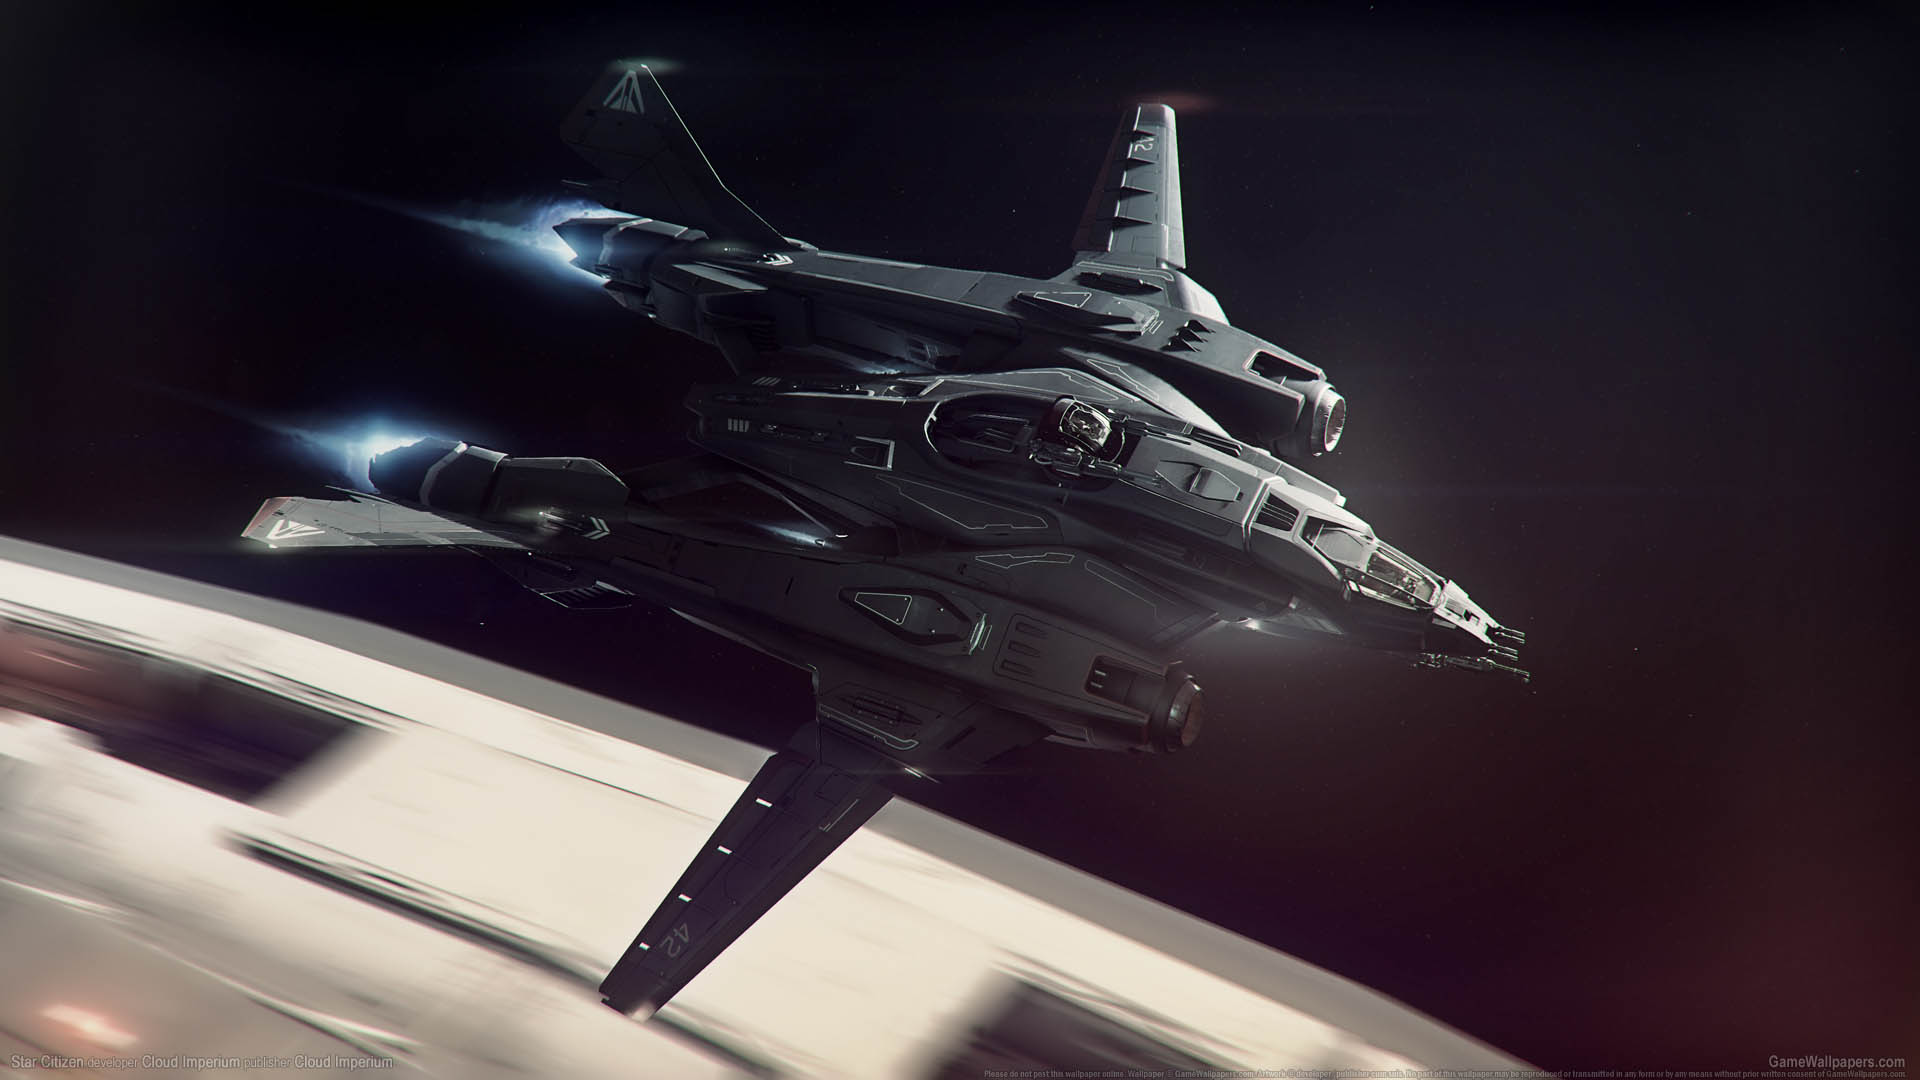 Star Citizen Wallpaper 1080p: Star Citizen Wallpaper 27 1920x1080